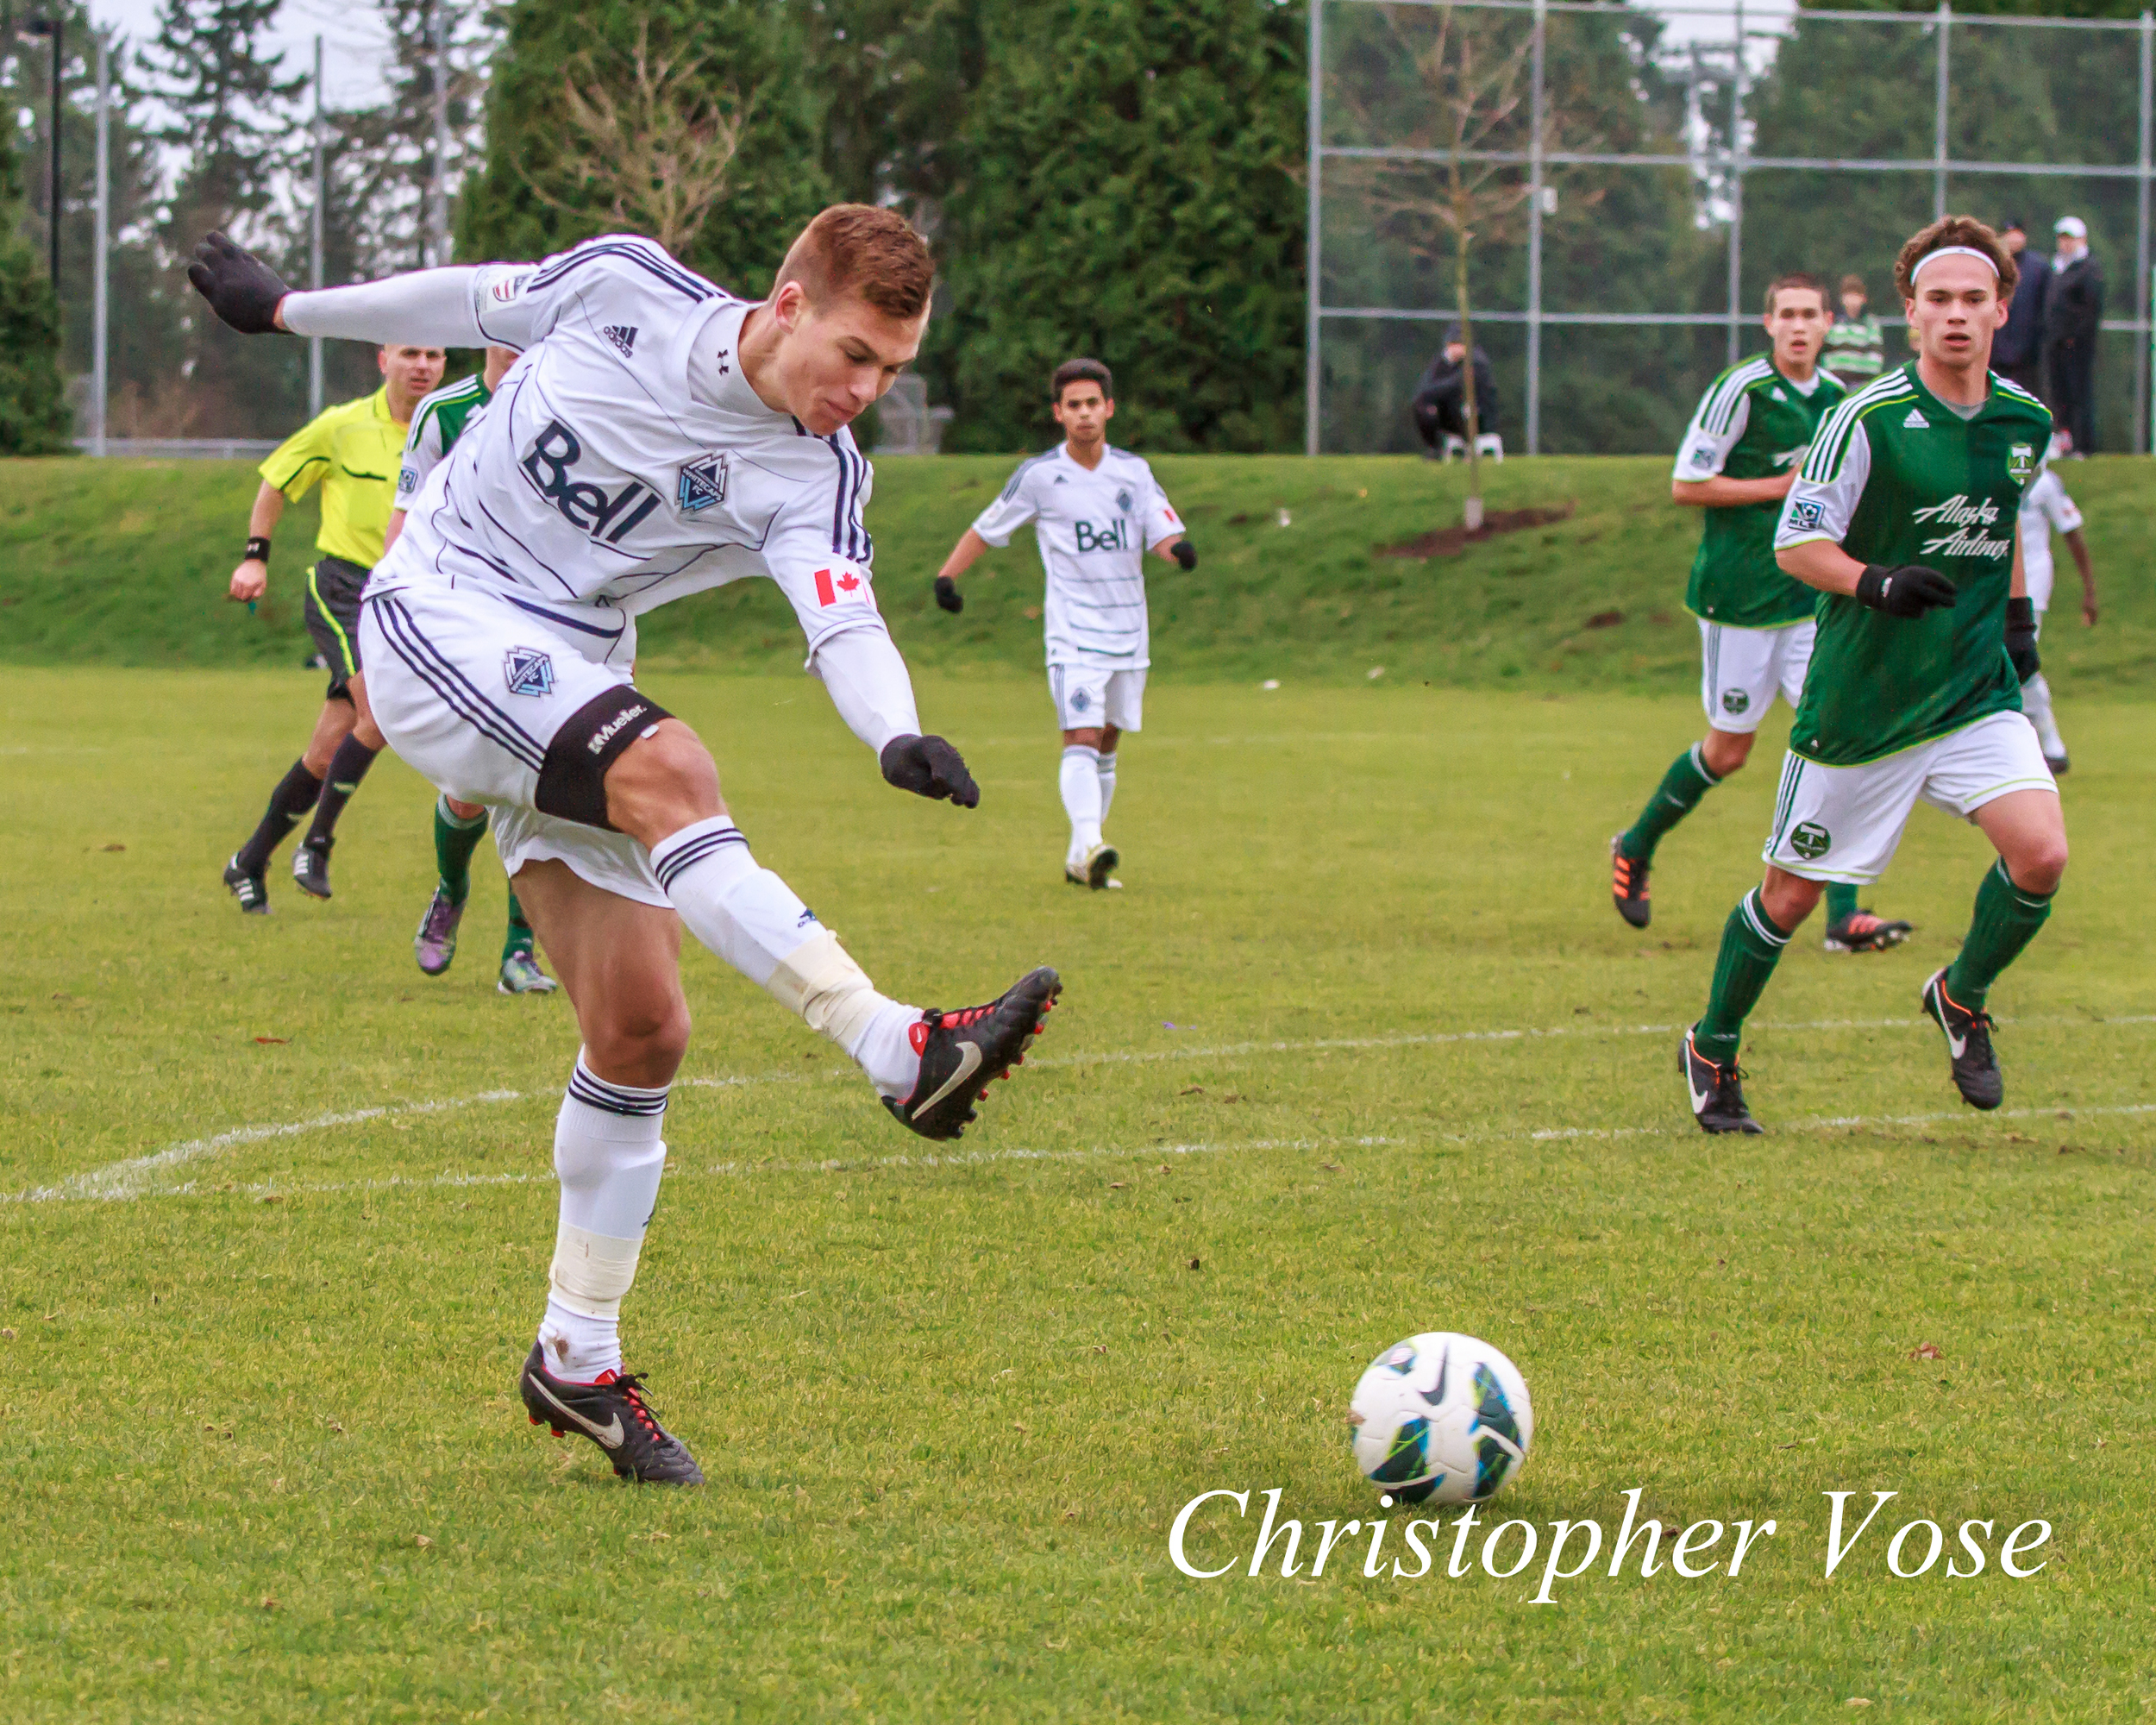 Brody Huitema playing for the U18s at South Surrey Athletic Park on 16 December 2012.